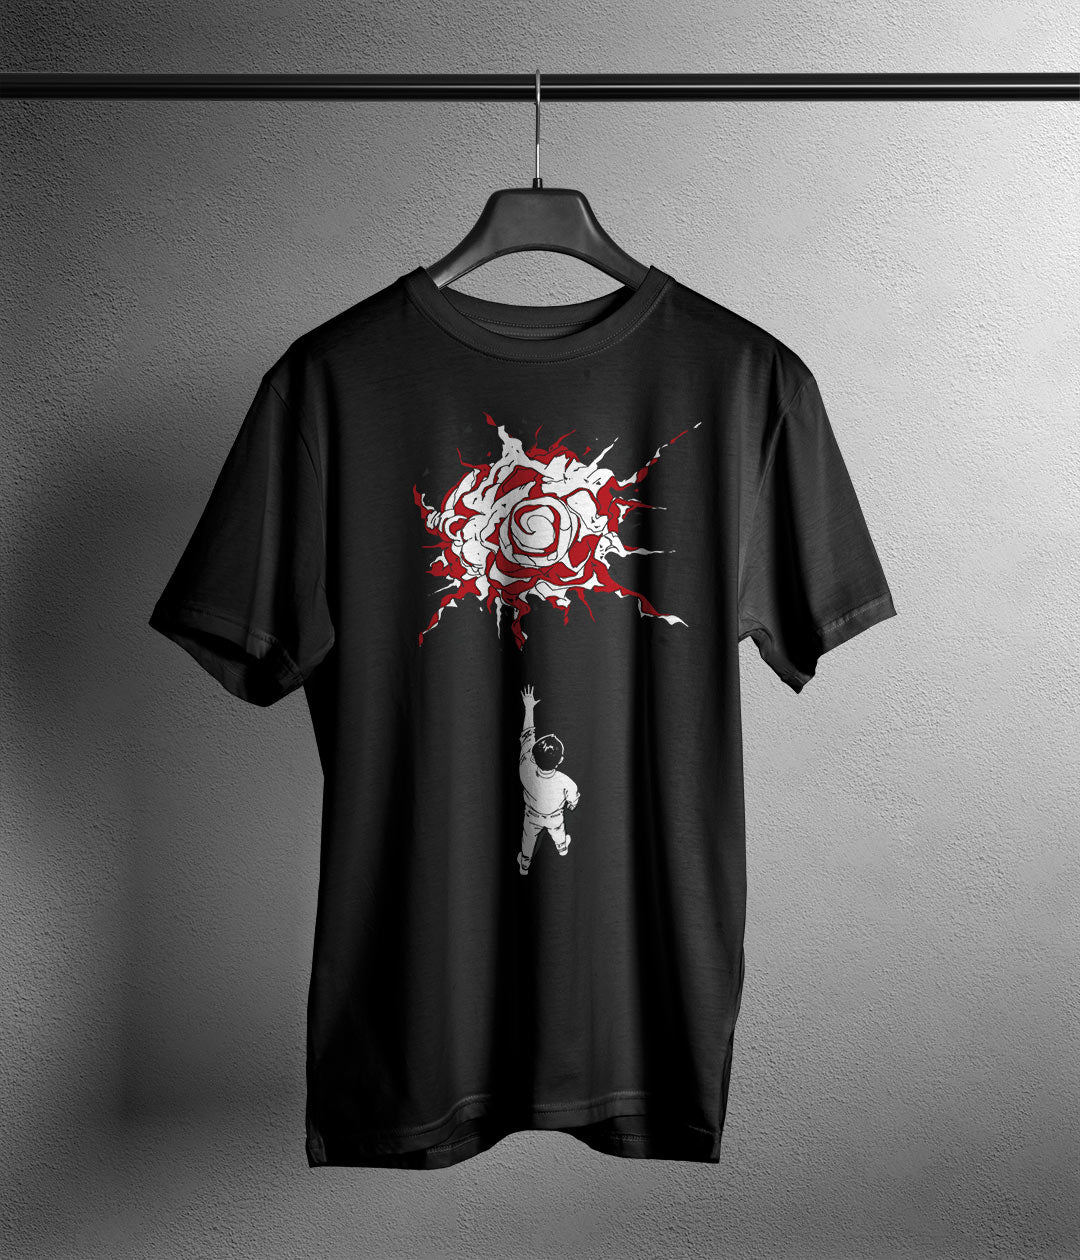 black t shirt with anime figure akira bike exploding